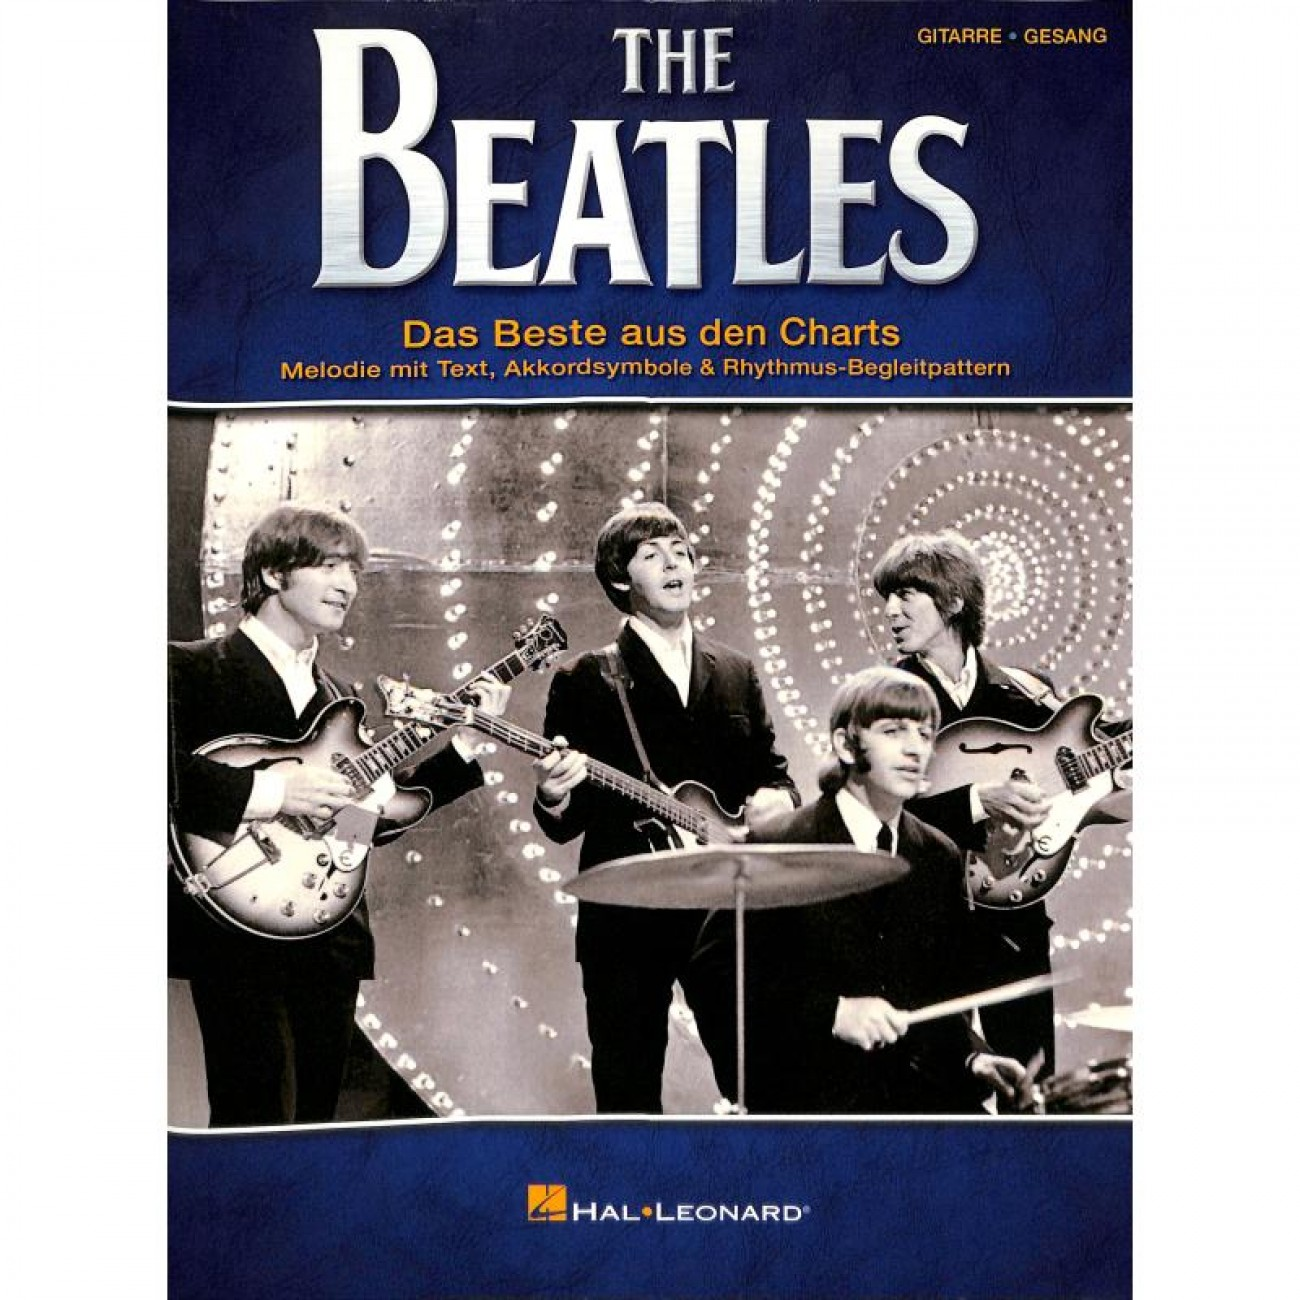 The Beatles - Das Beste aus den Charts